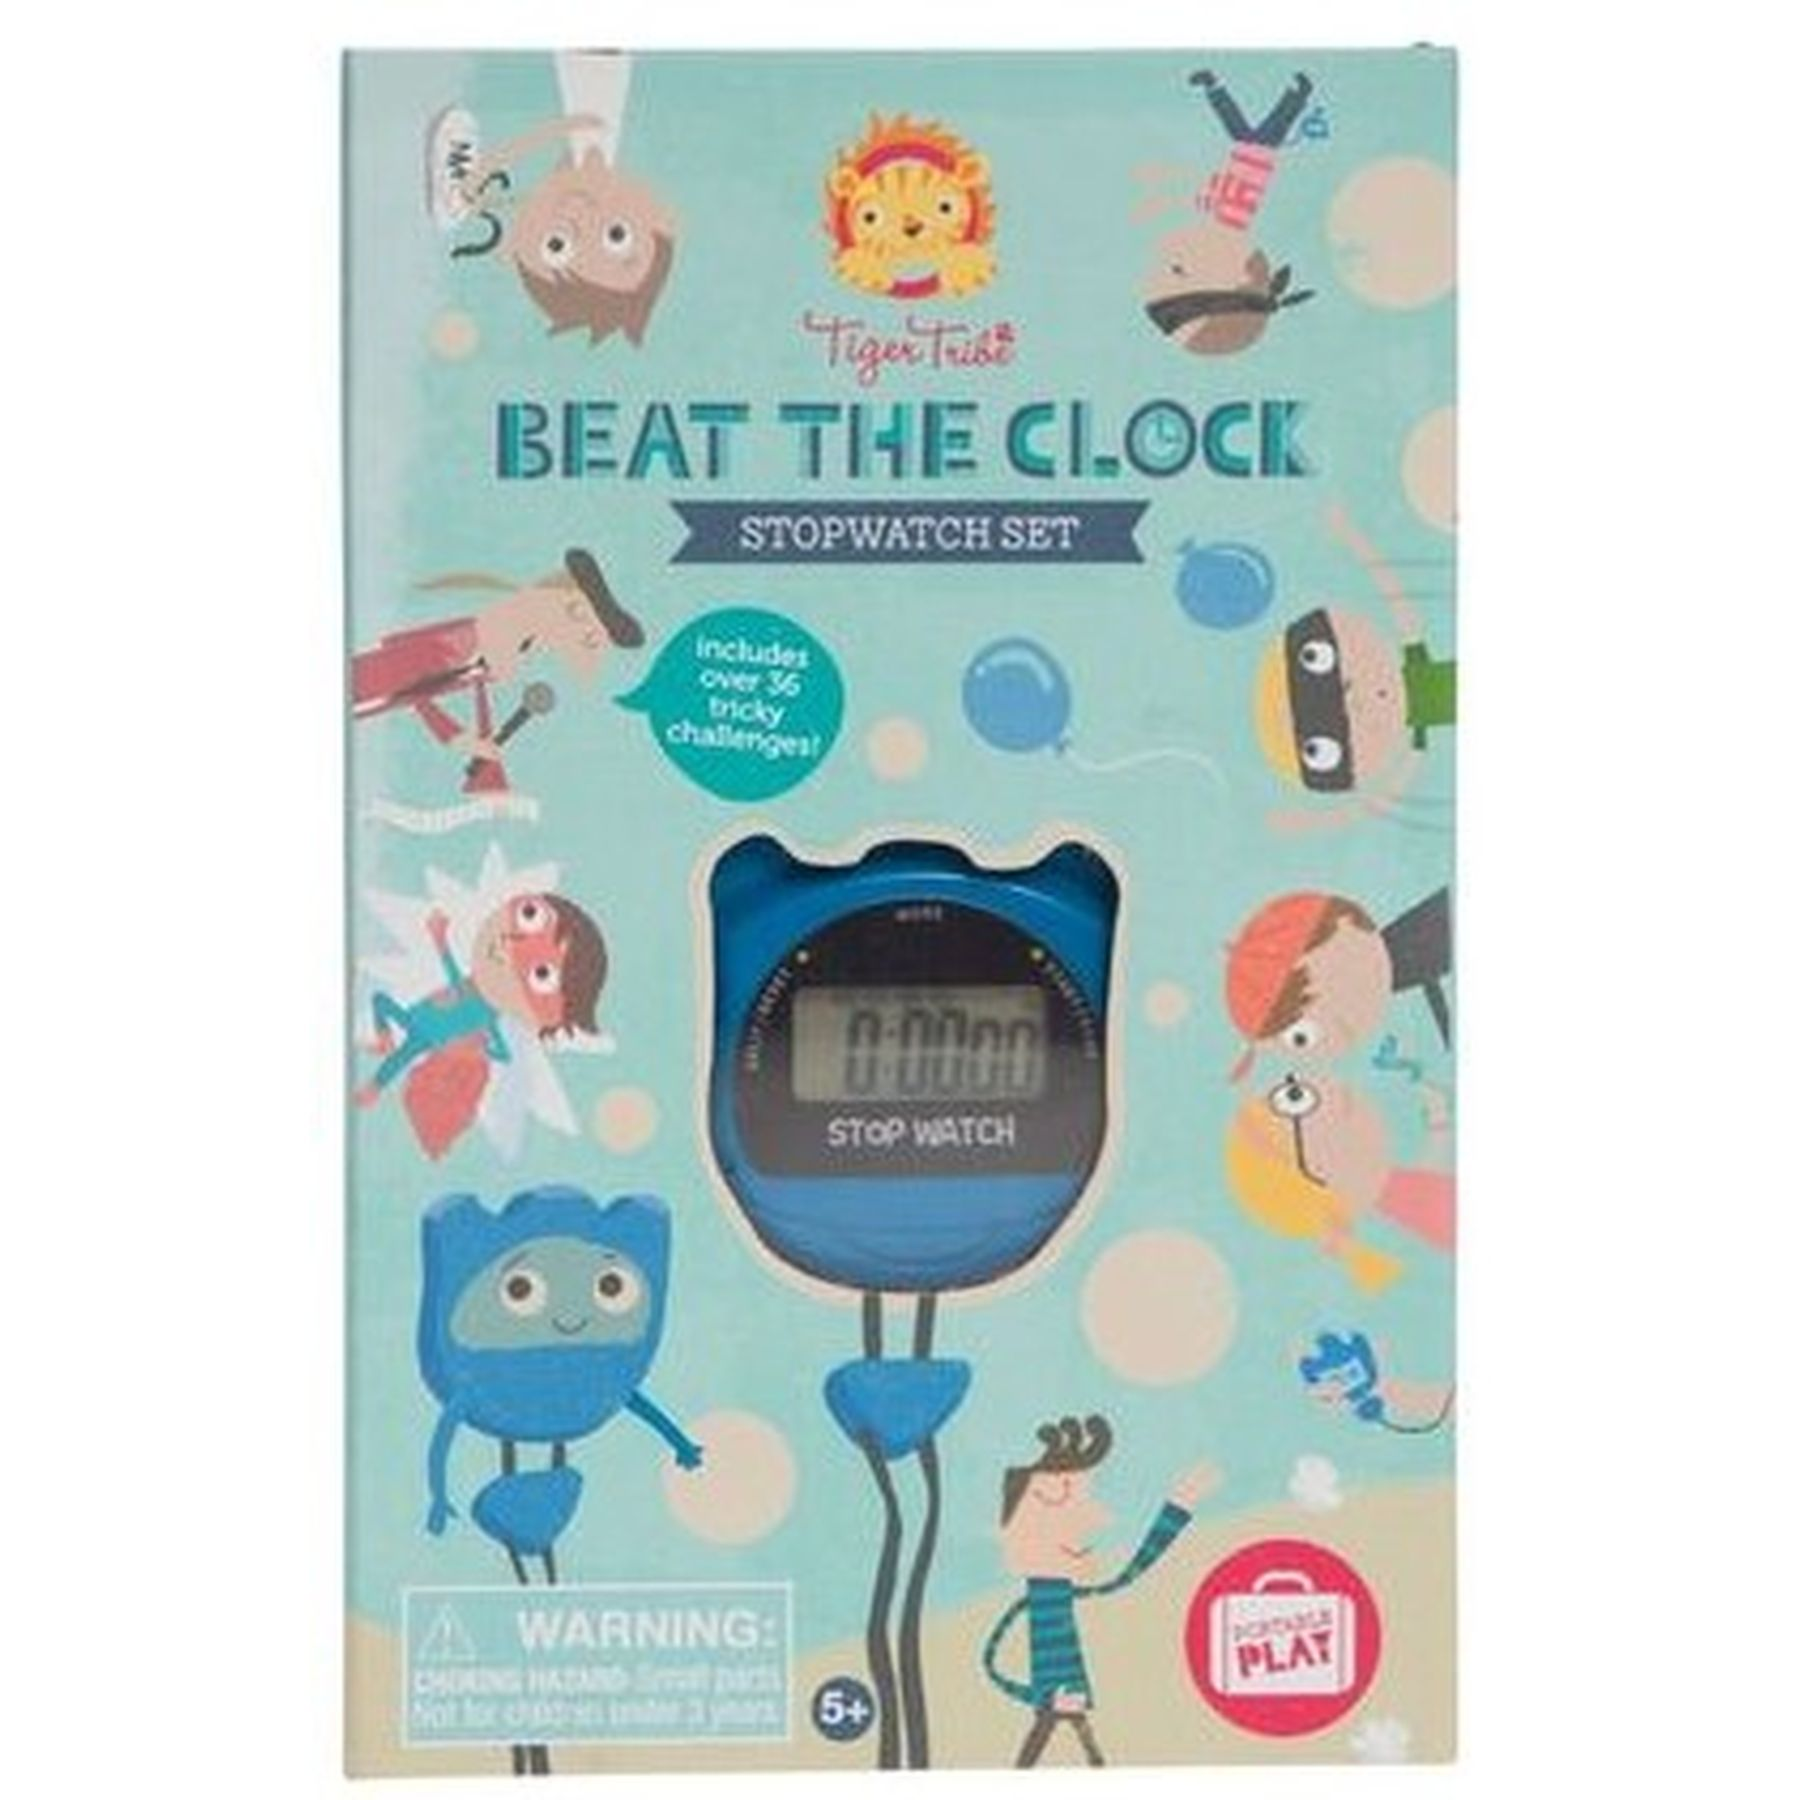 Tiger Tribe Beat The Clock Stopwatch Set - PLAY-Art & Craft : Kid